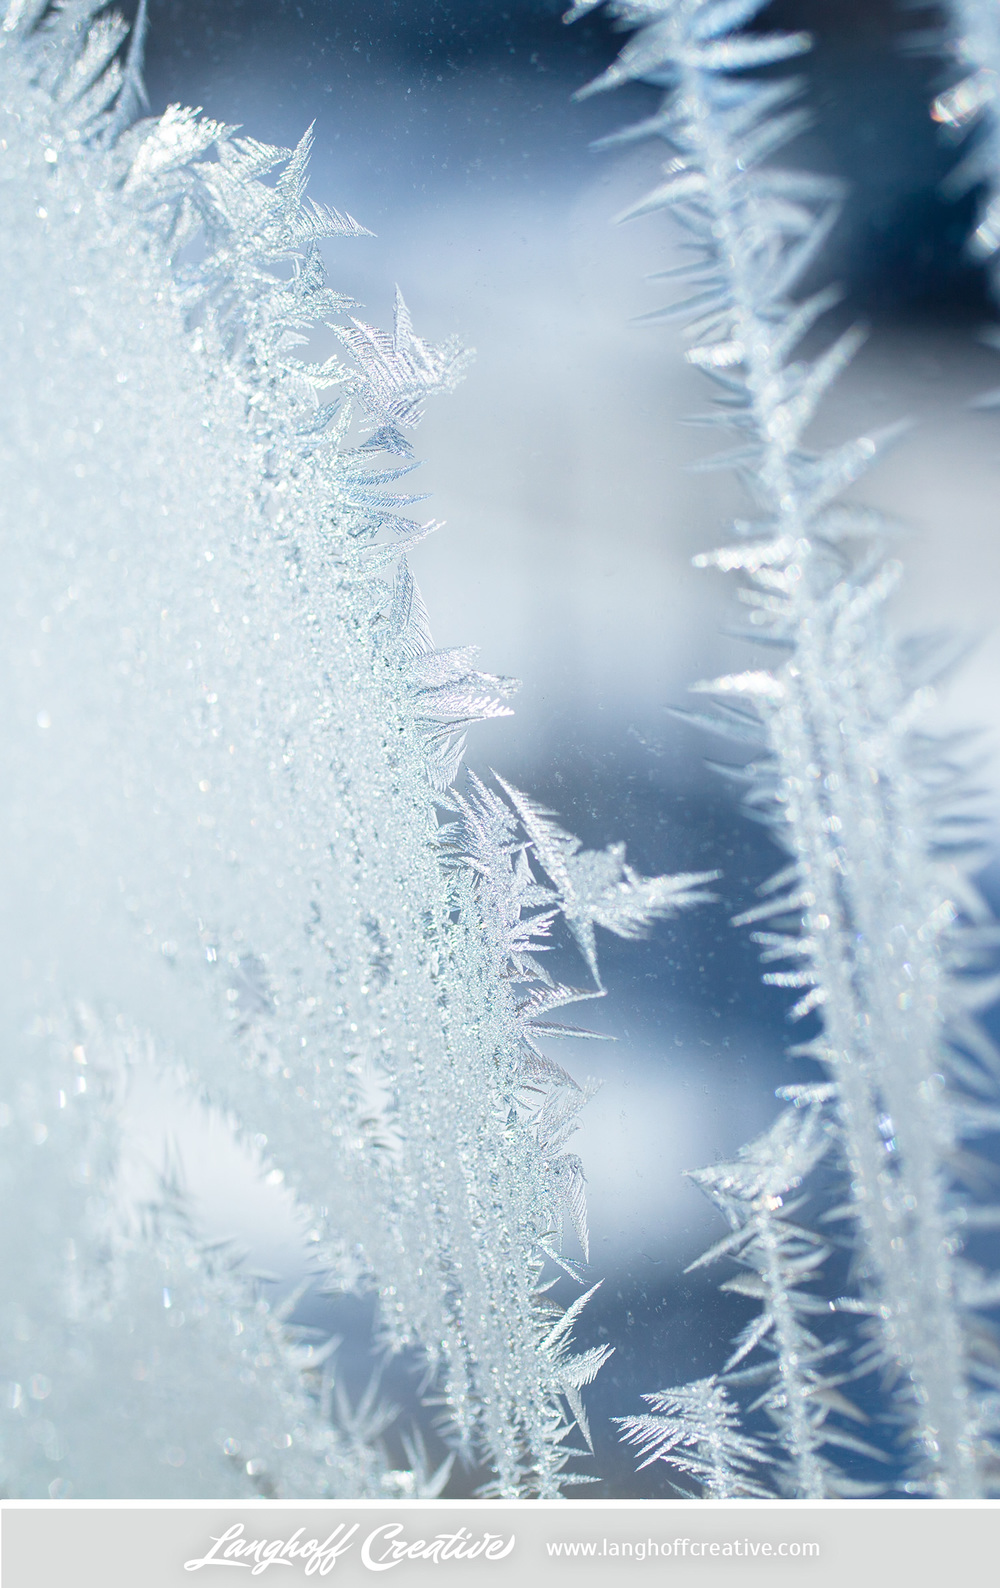 LanghoffCreative-frost-macro-photography_Jan06-2014-photo-2.jpg